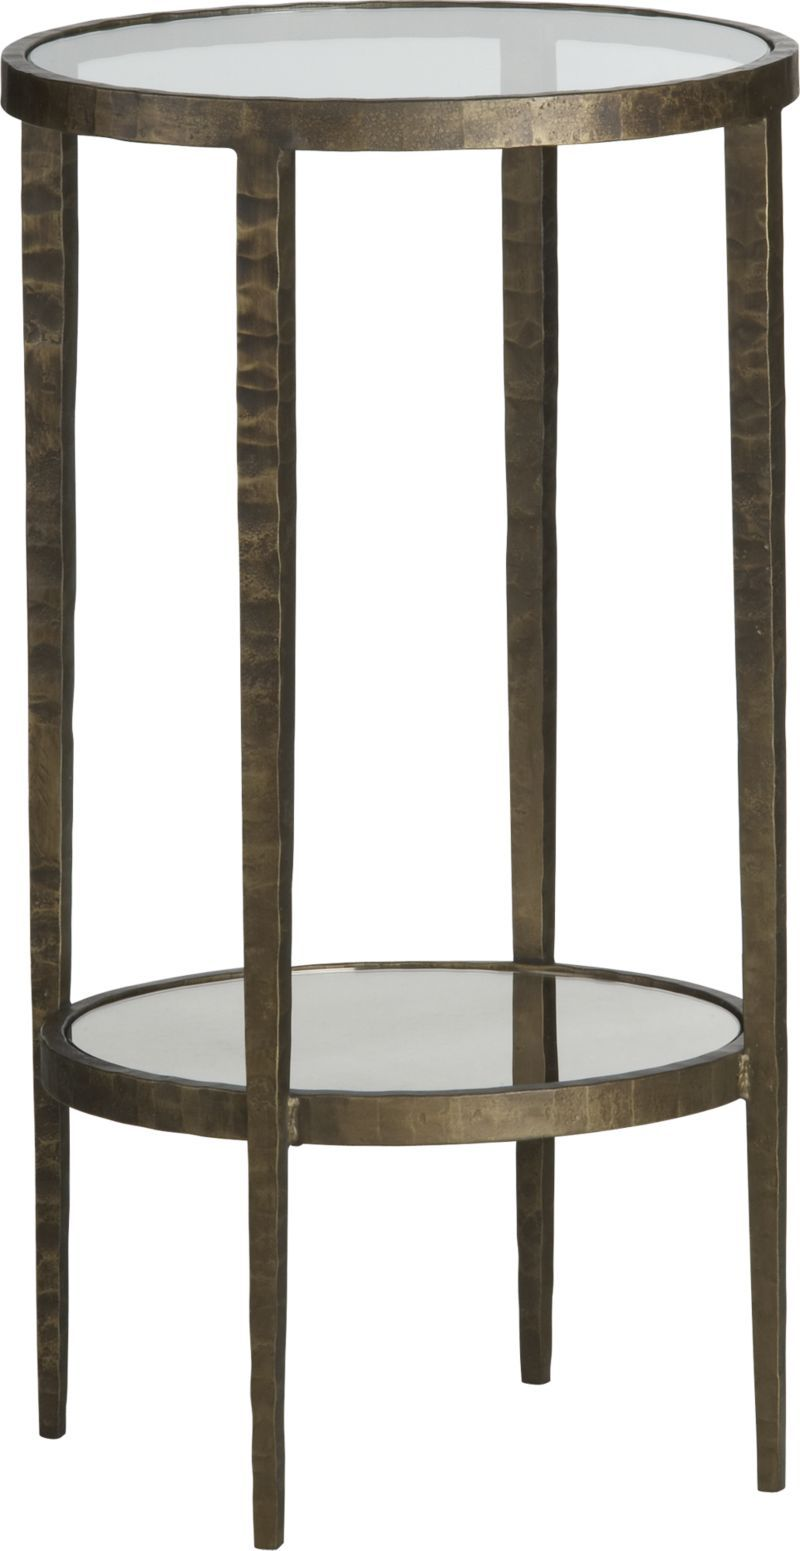 clairemont pedestal table accent tables crate and barrel round wood ikea white coffee kitchen dining room outdoor setting exterior furniture bedside plans barn door cabinets